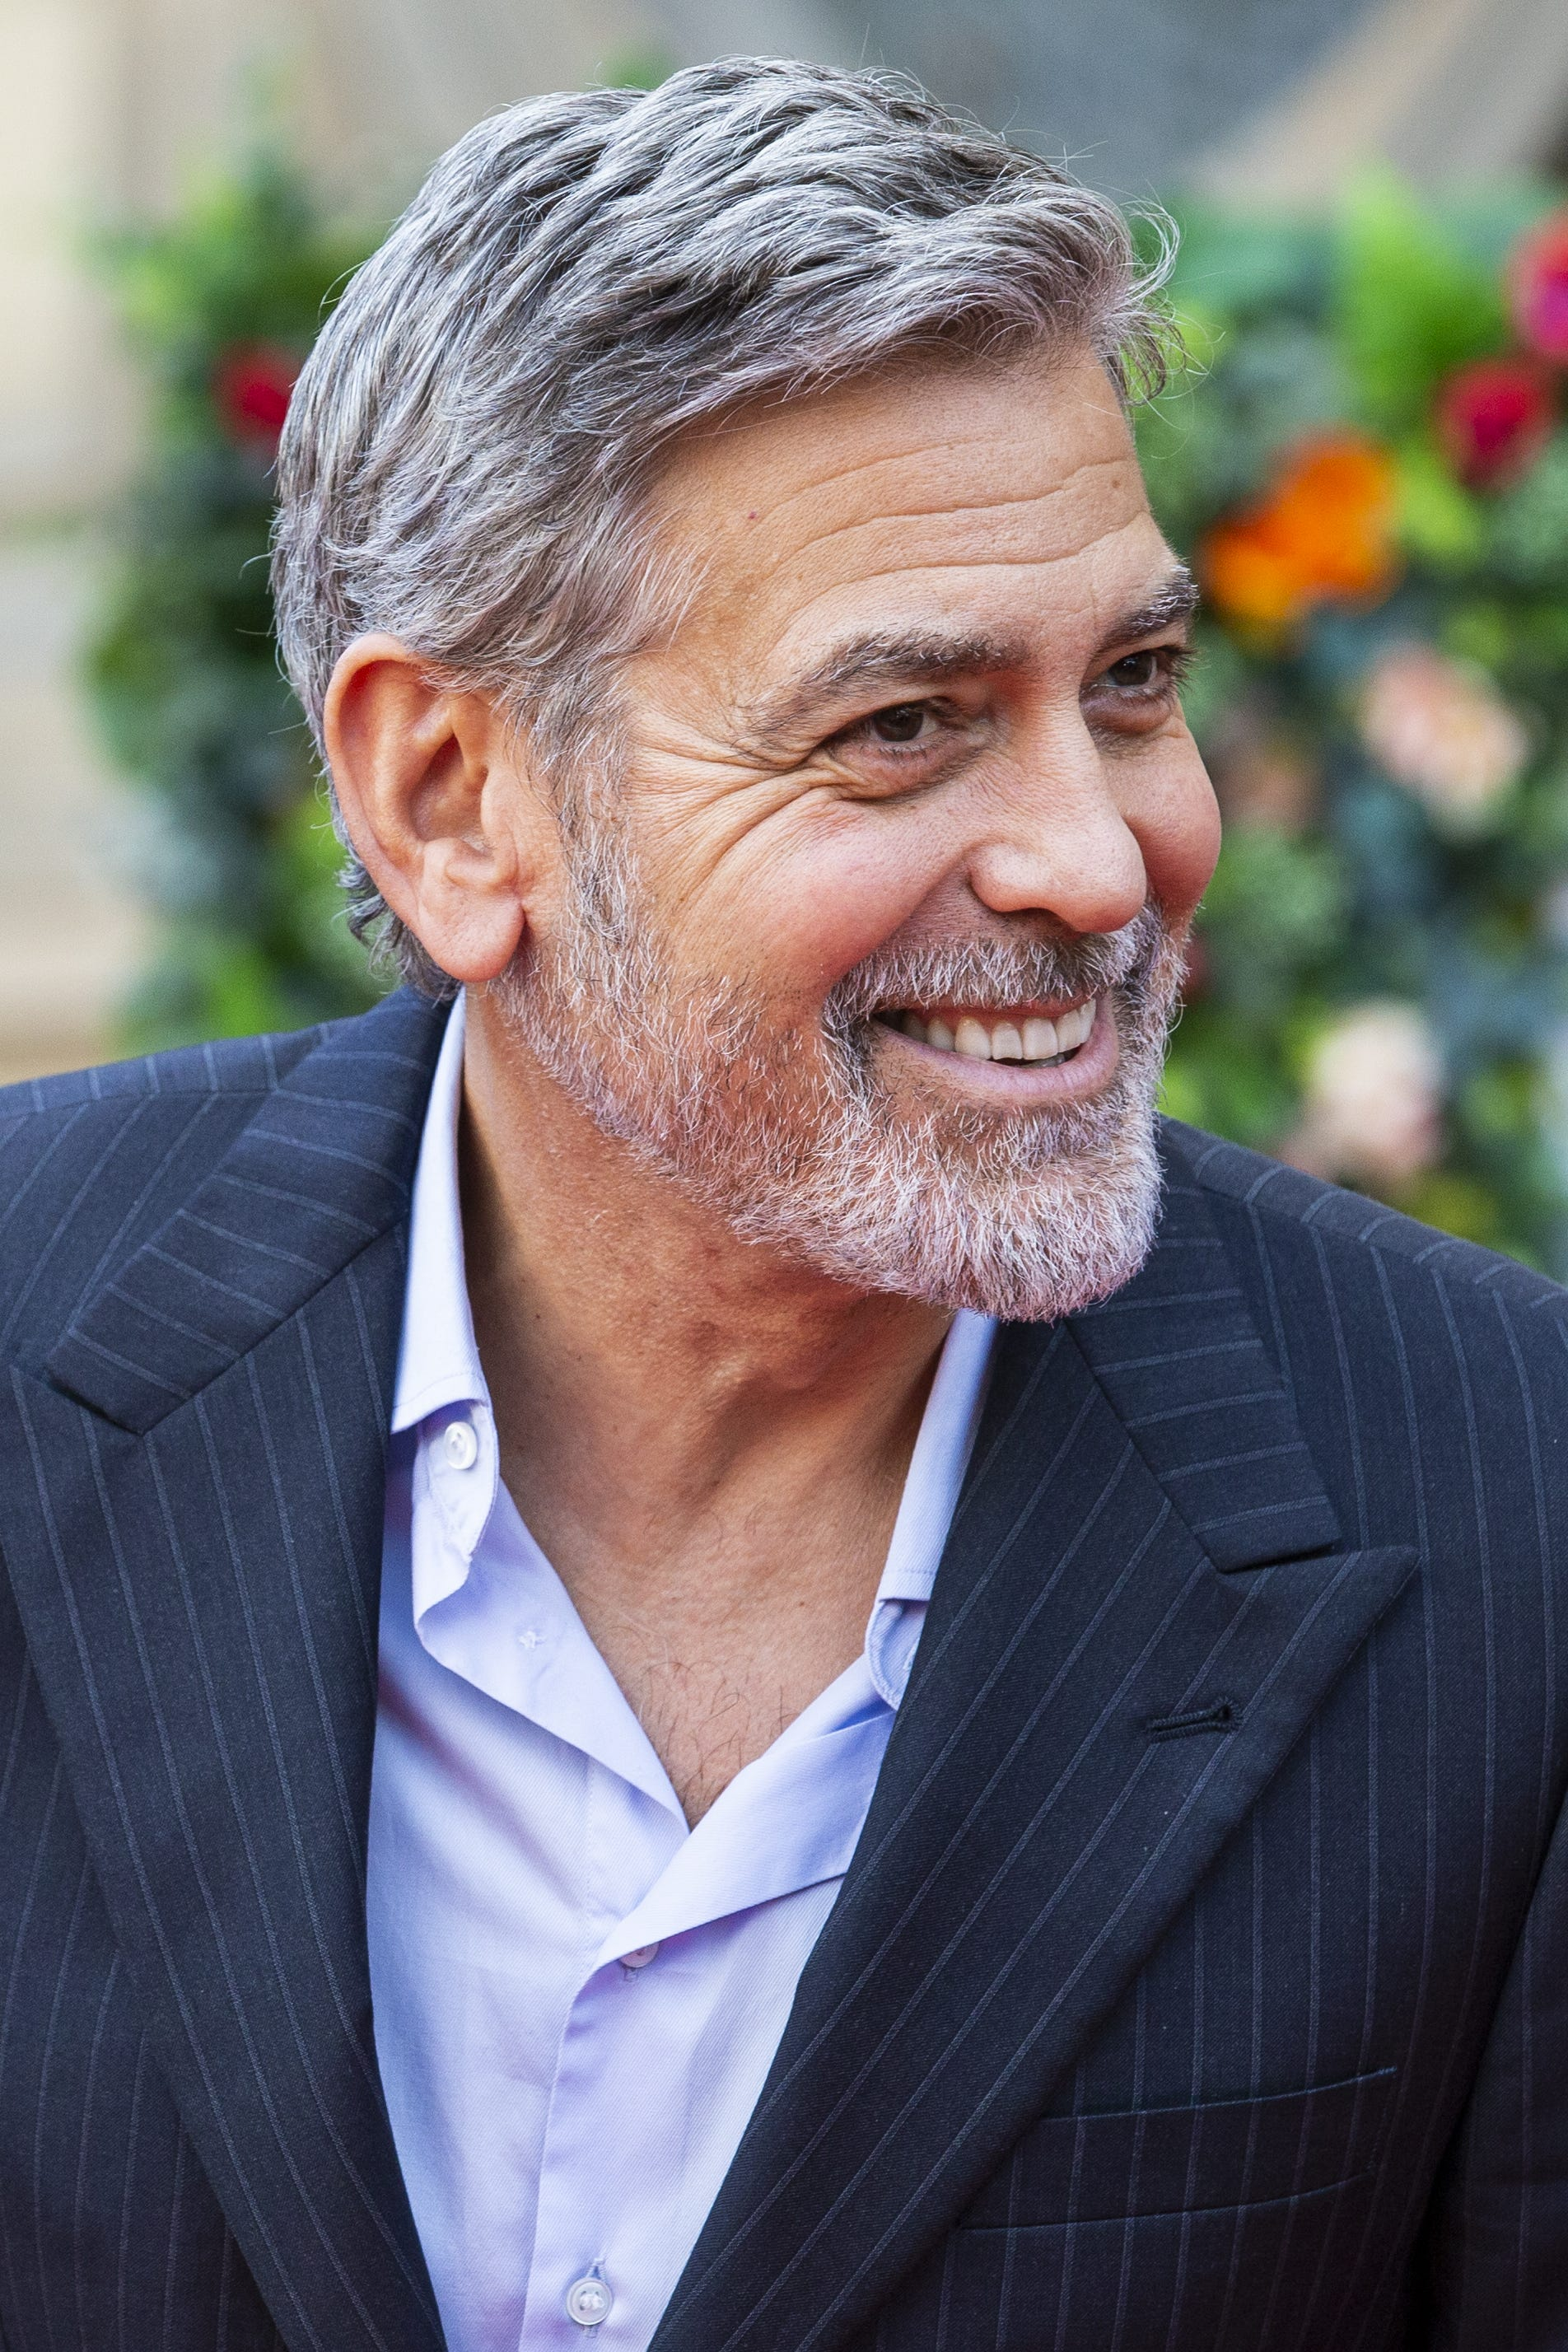 George Clooney defends 'kind and smart' Duchess Meghan against 'unjust' treatment by press